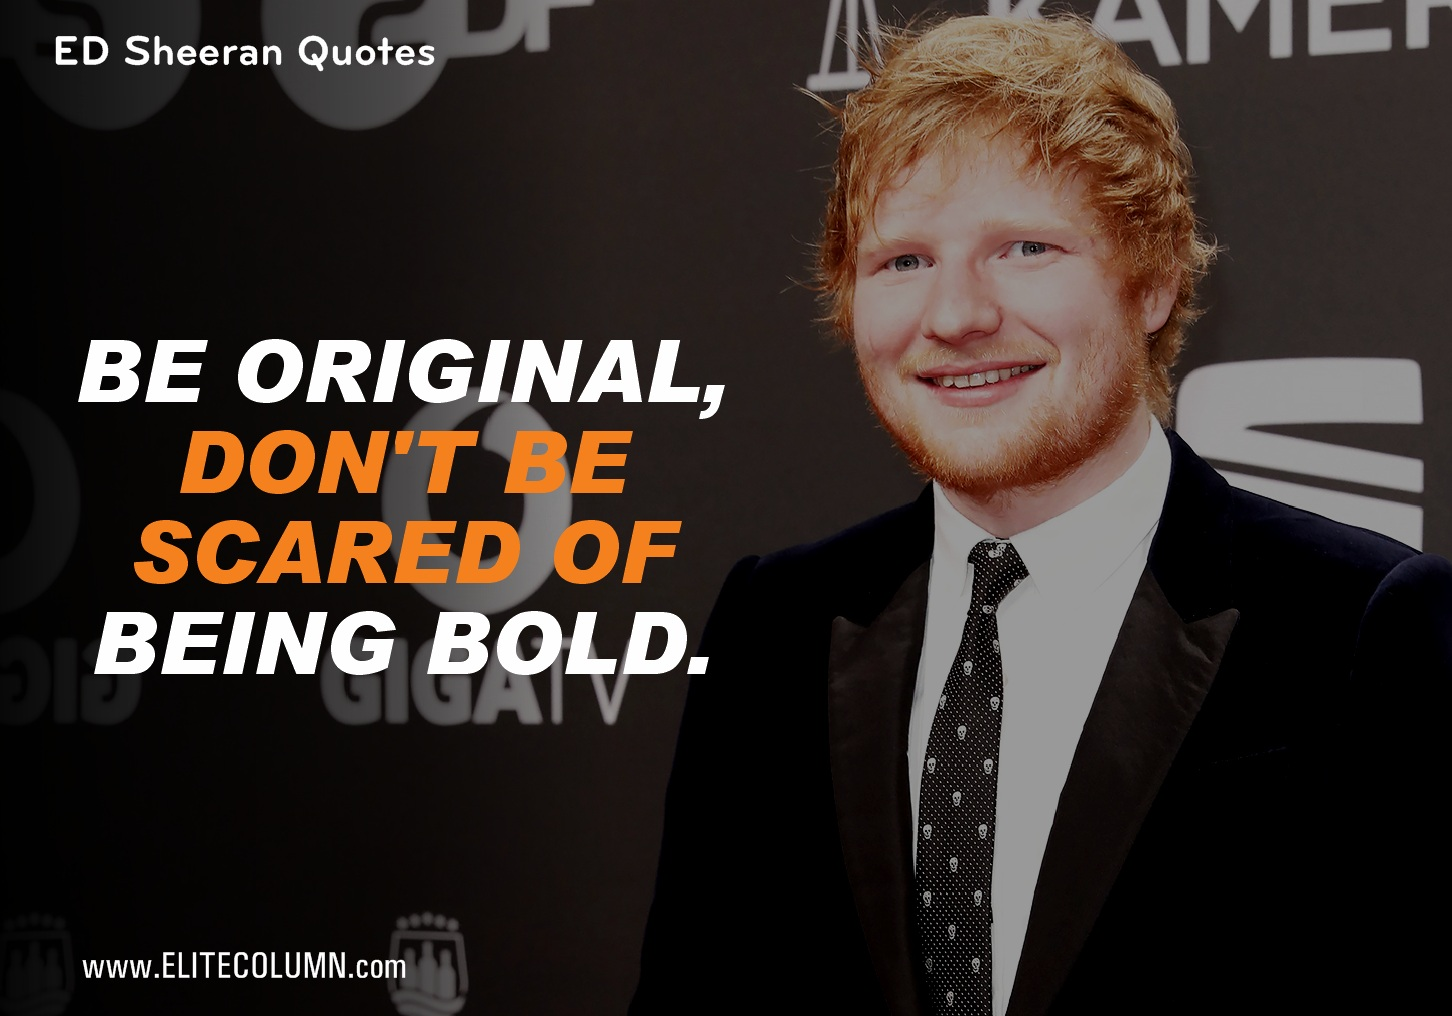 Ed Sheeran Quotes (9)